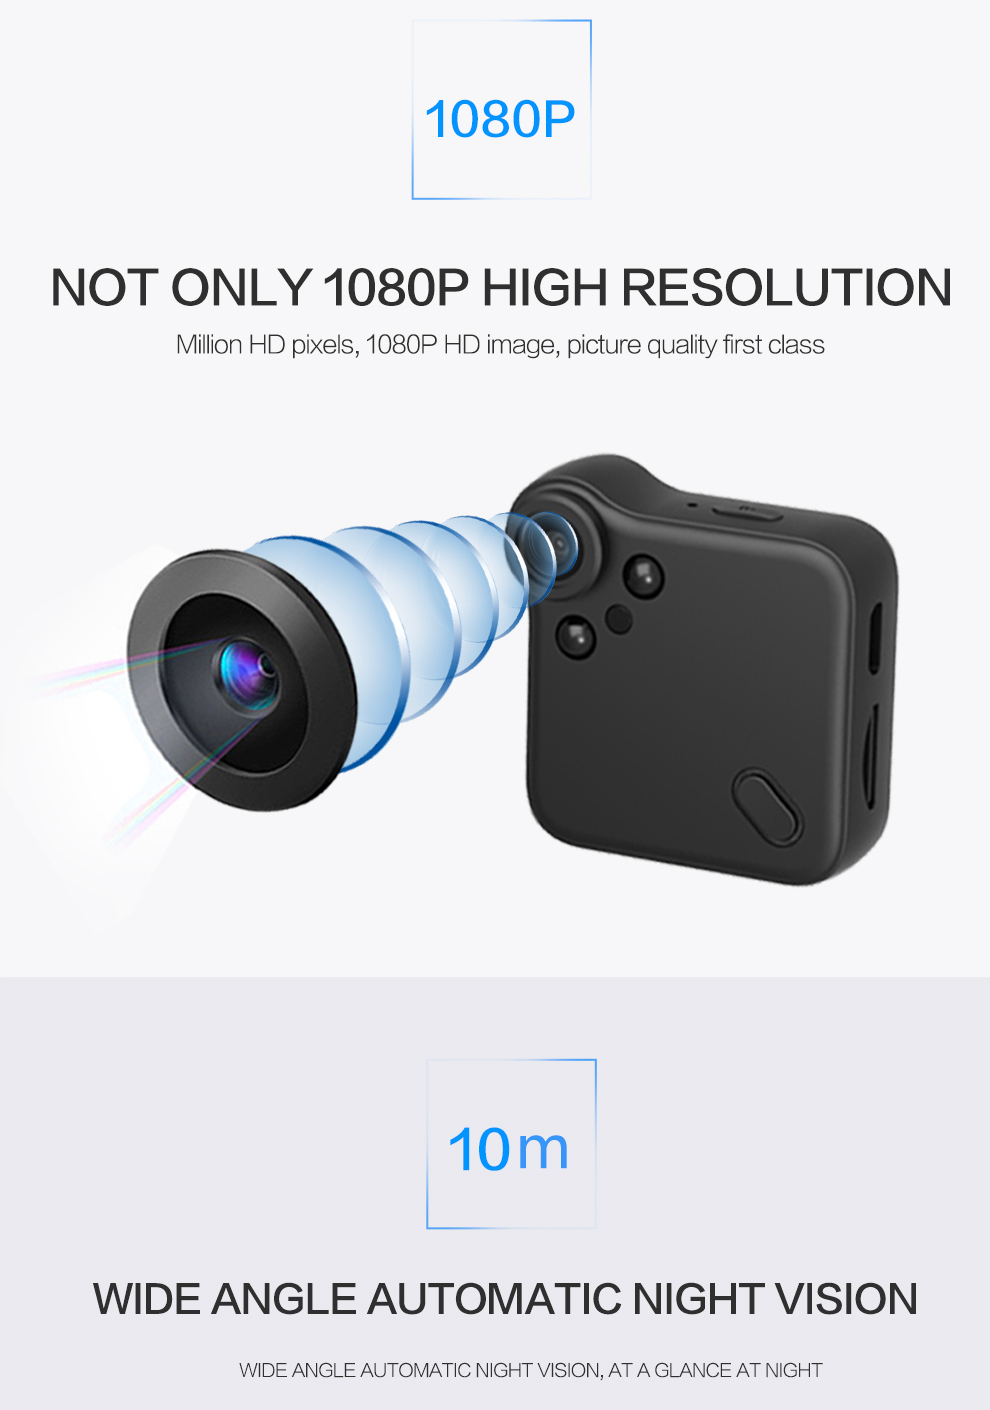 Wearable mini WiFi camera -1080P, night vision, motion detection, CMOS sensor, application support,64GB SD cardslot, 140 degrees